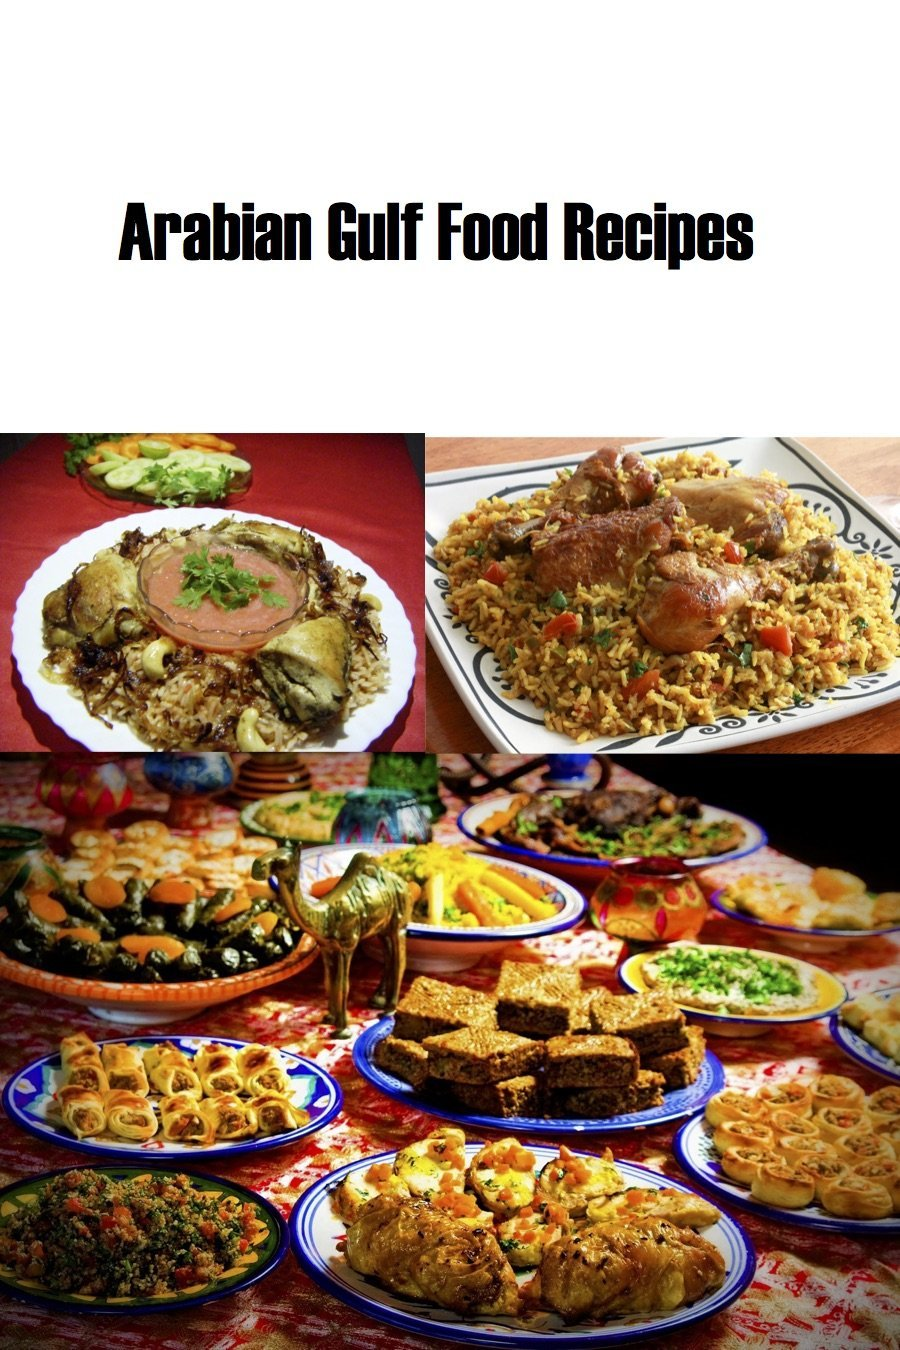 Arabian gulf food recipes free ebooks download forumfinder Image collections